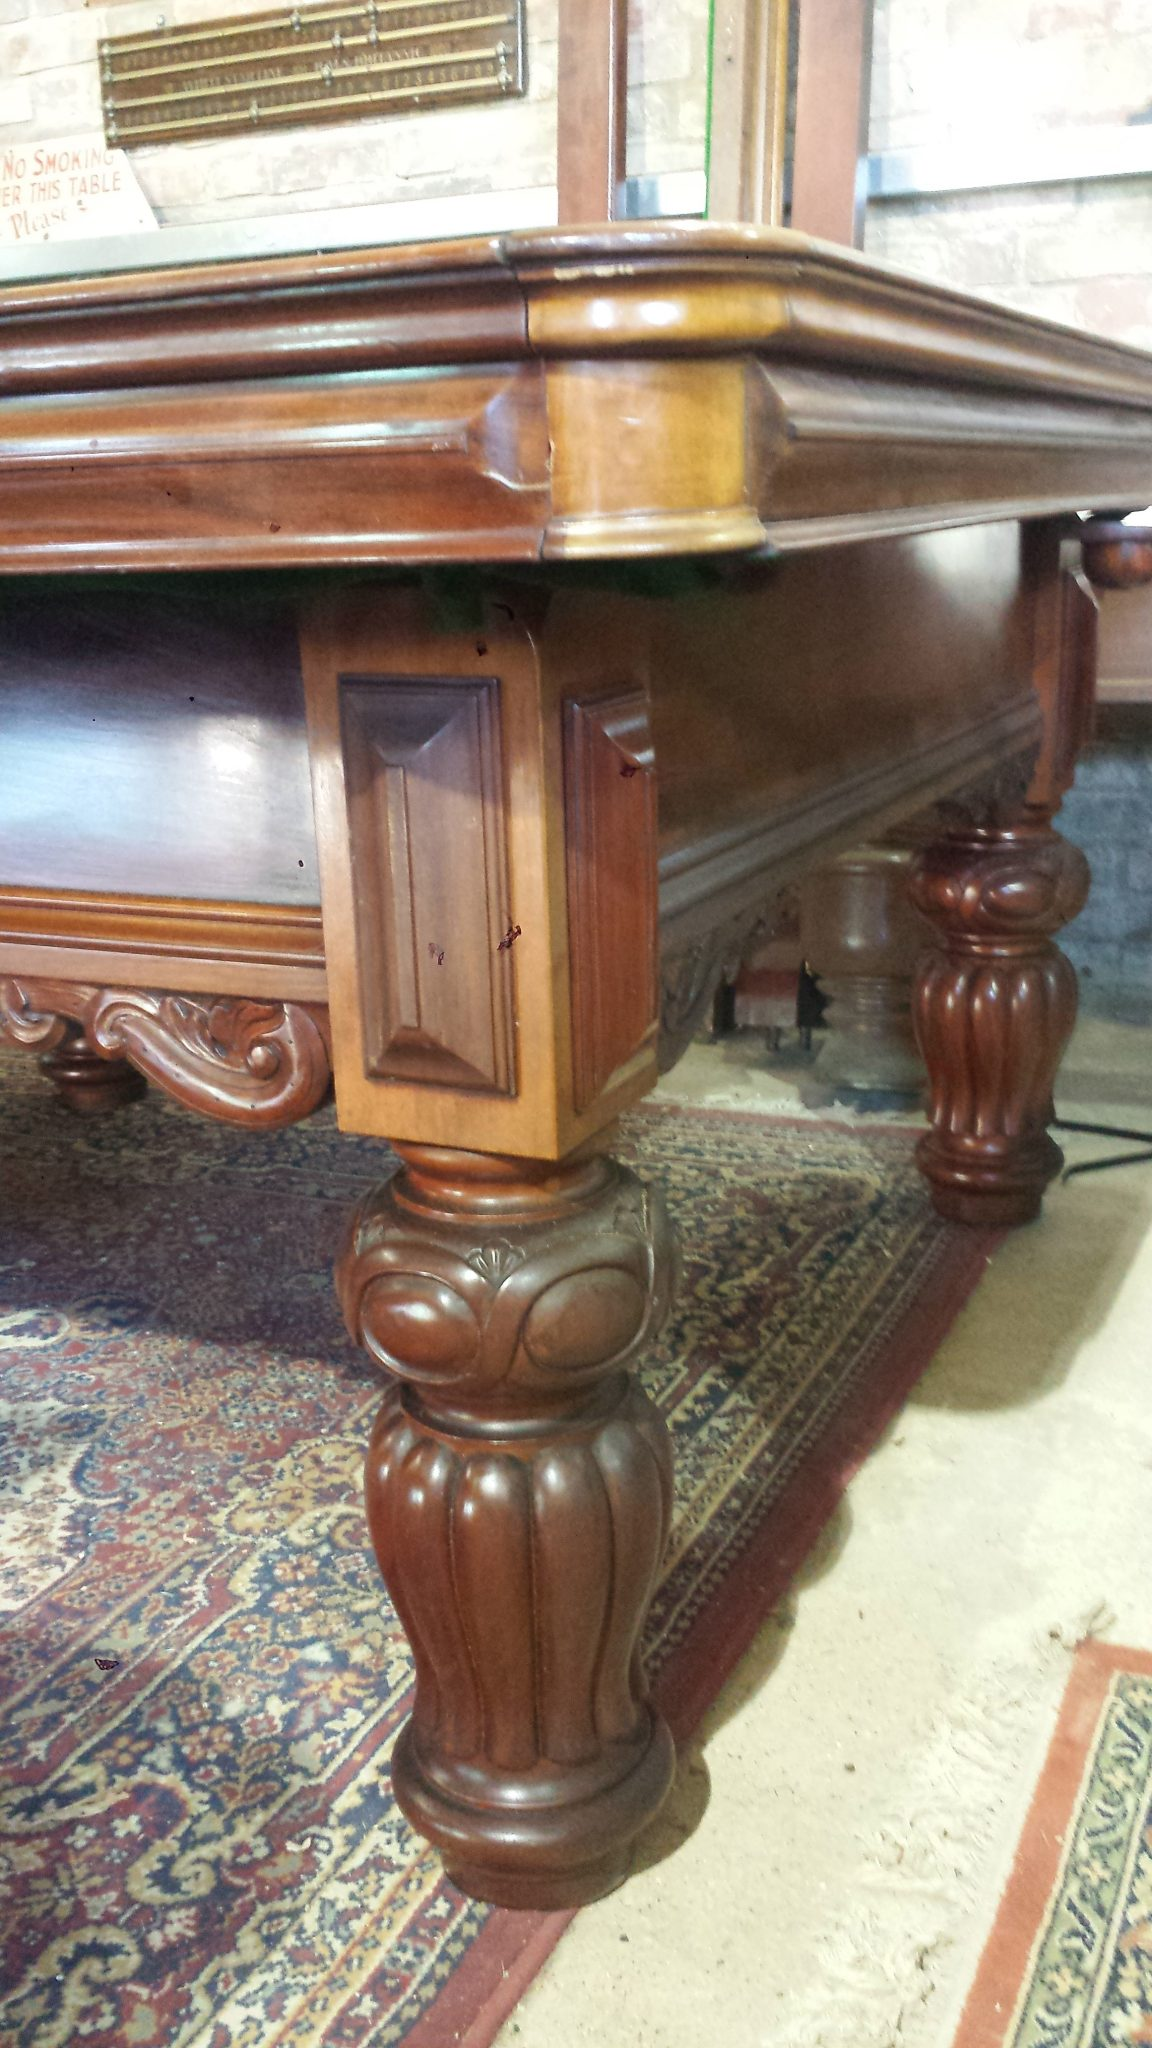 french polishing and antique furniture restoration